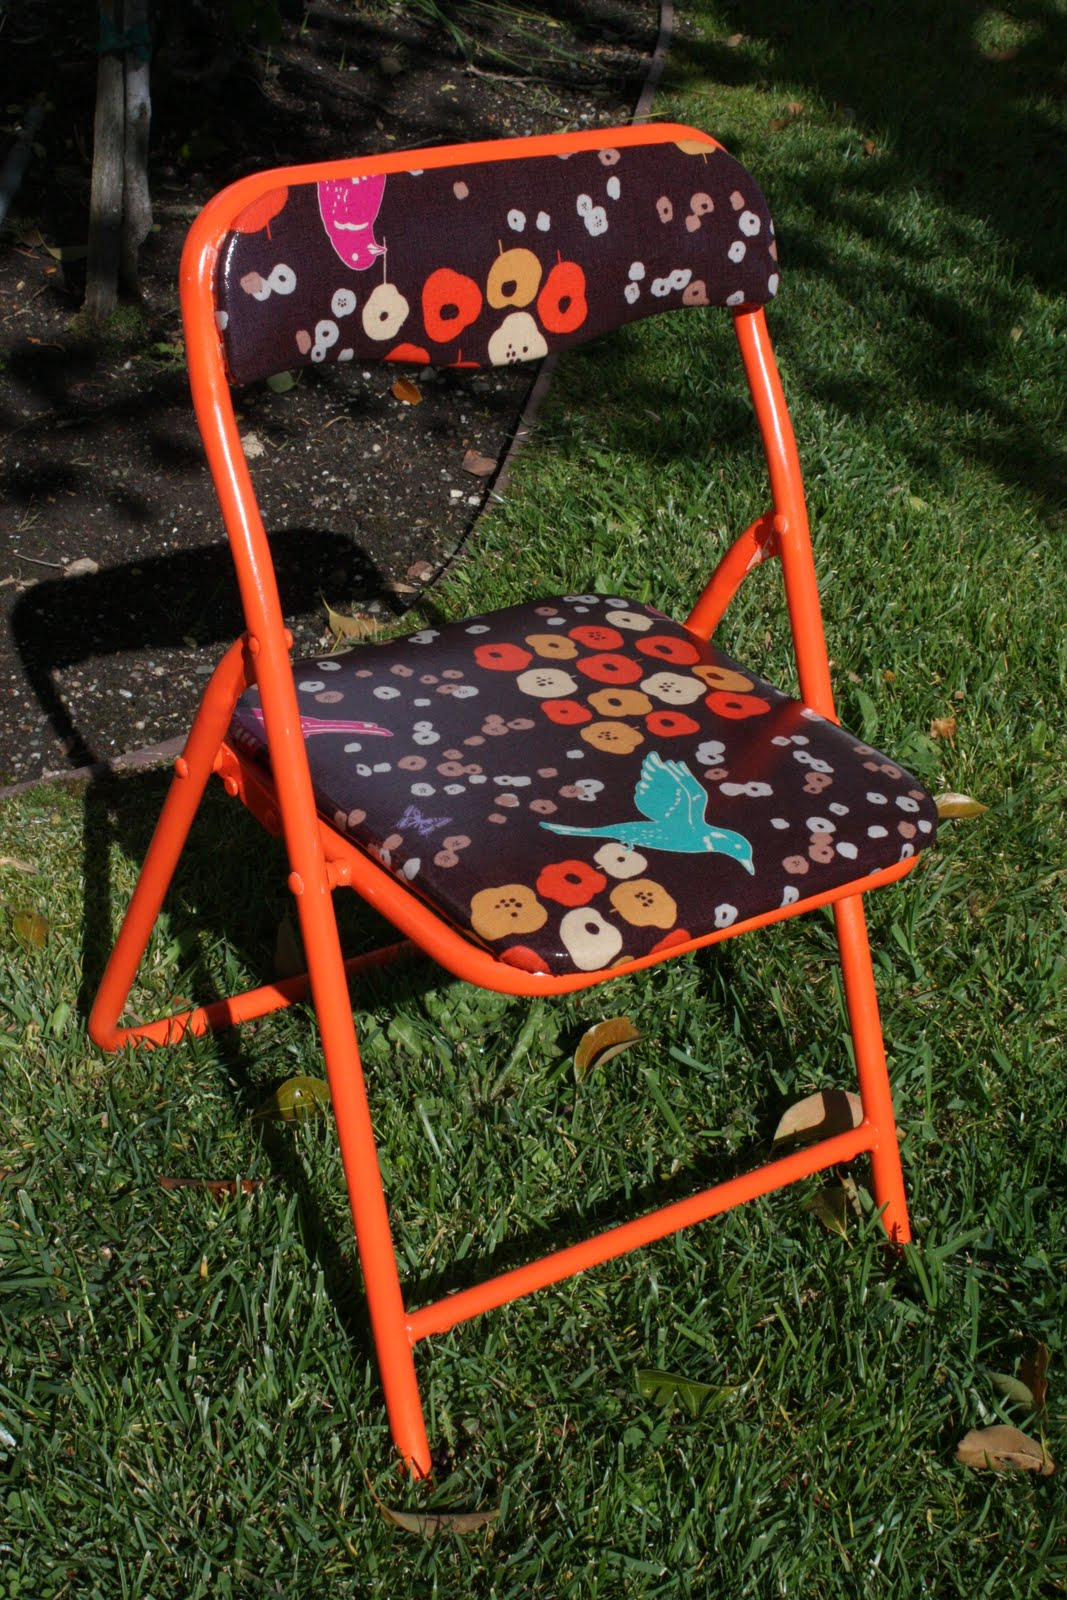 Floor Chairs, Lap Toppers, Loungers, and BackJacks Available at